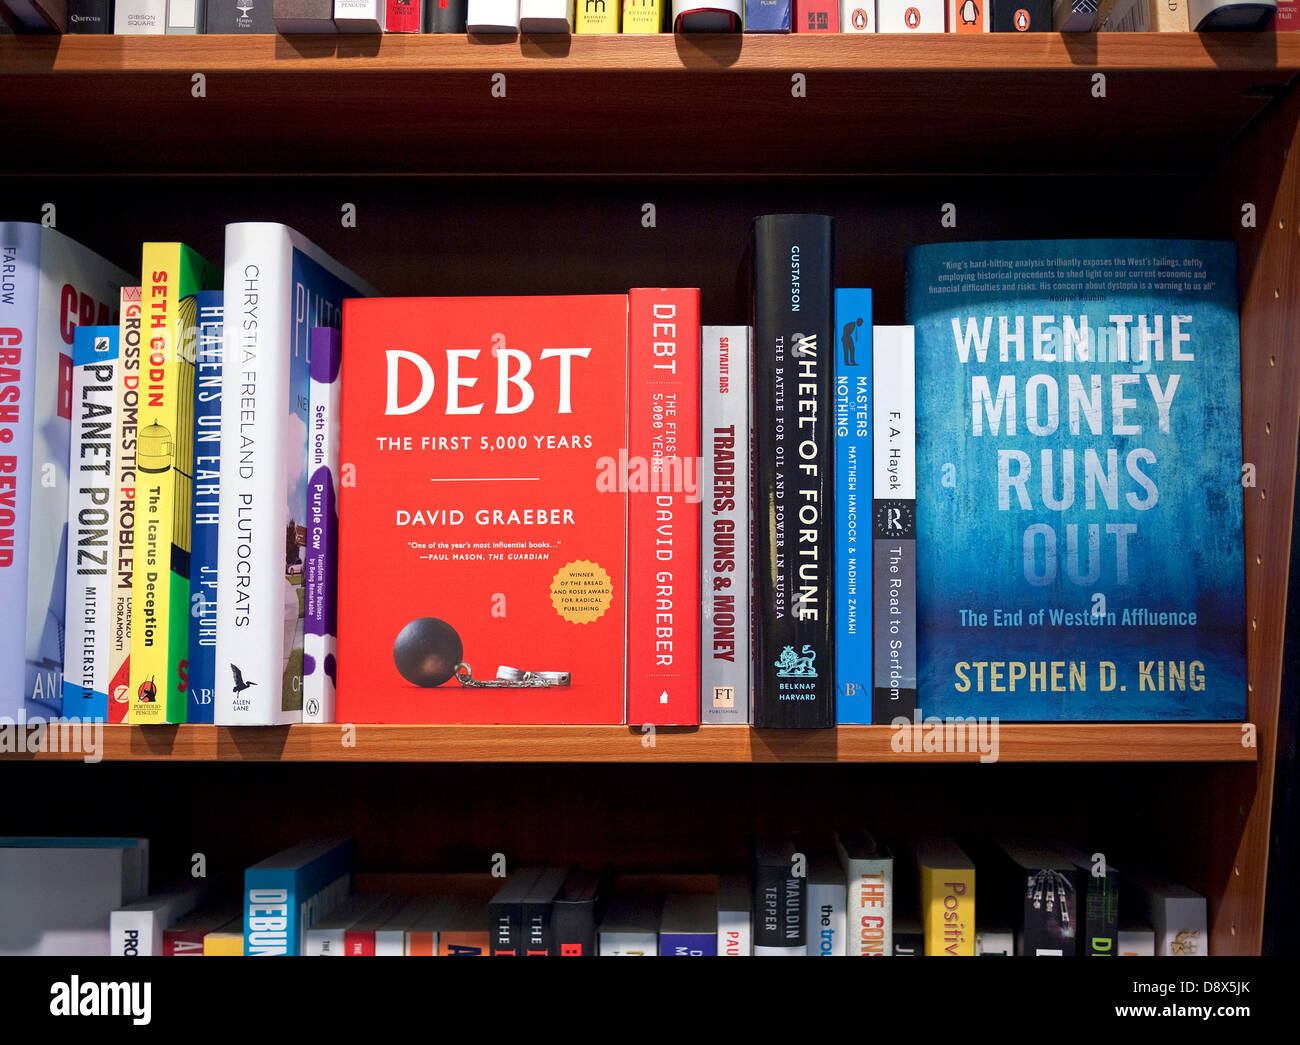 money and debt books on shelf in book shop - Stock Image